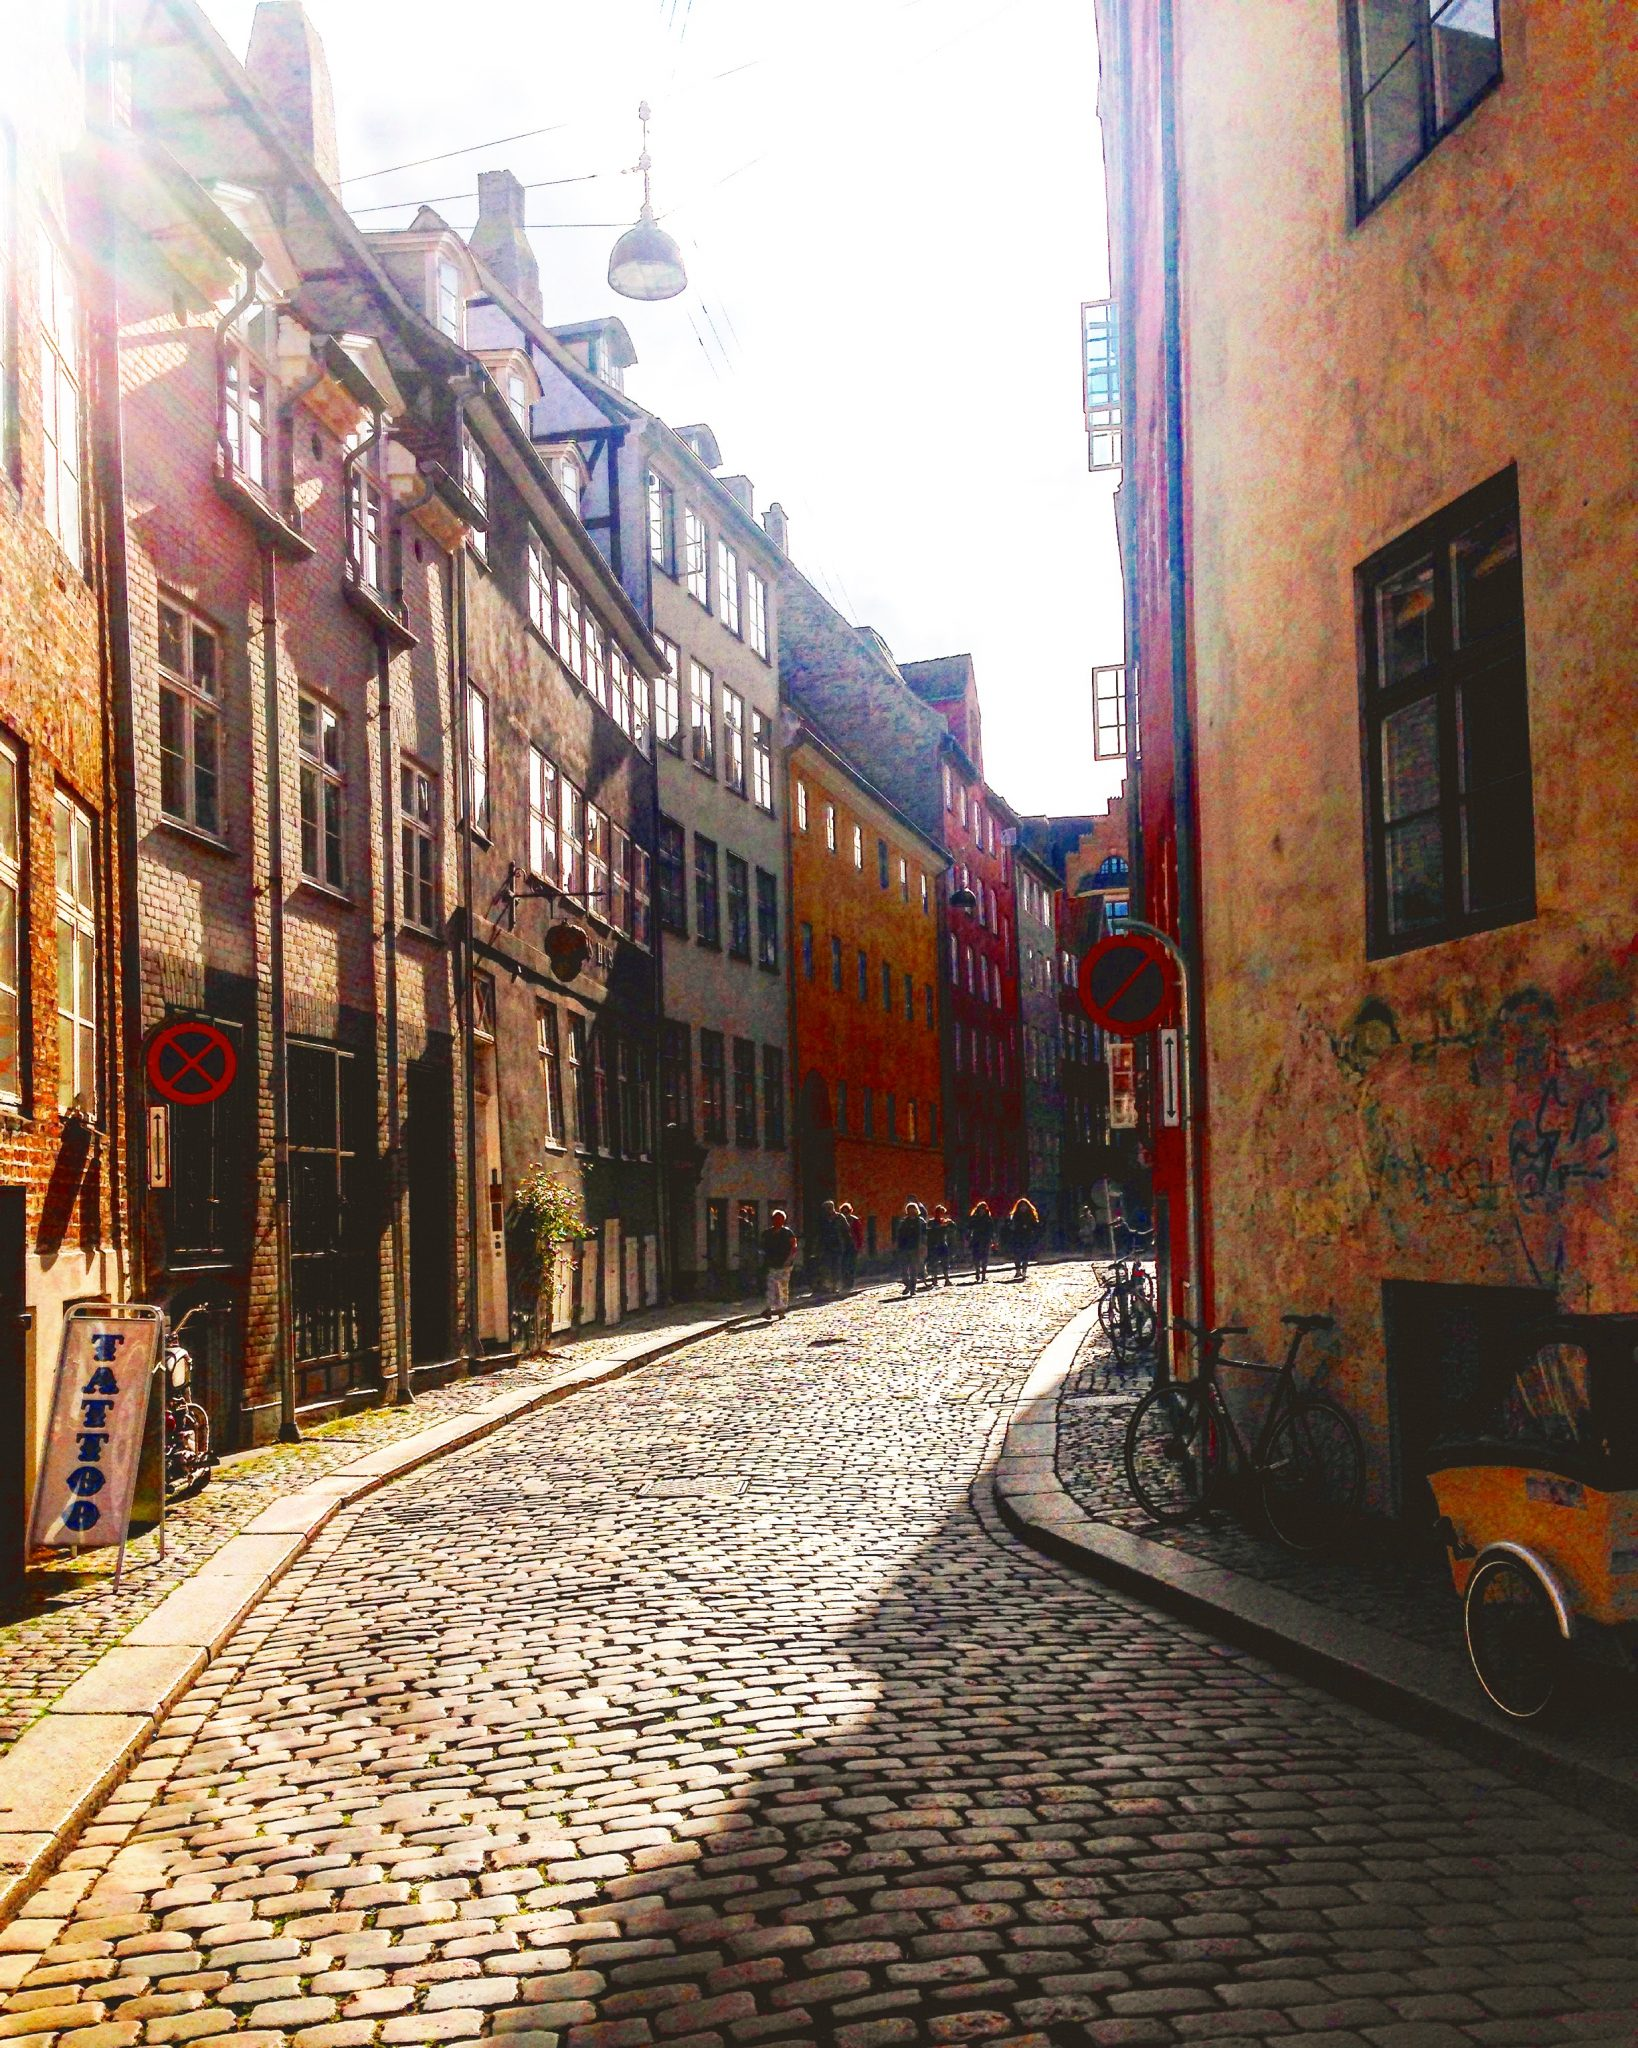 20 questions about Copenhagen to celebrate 850 years